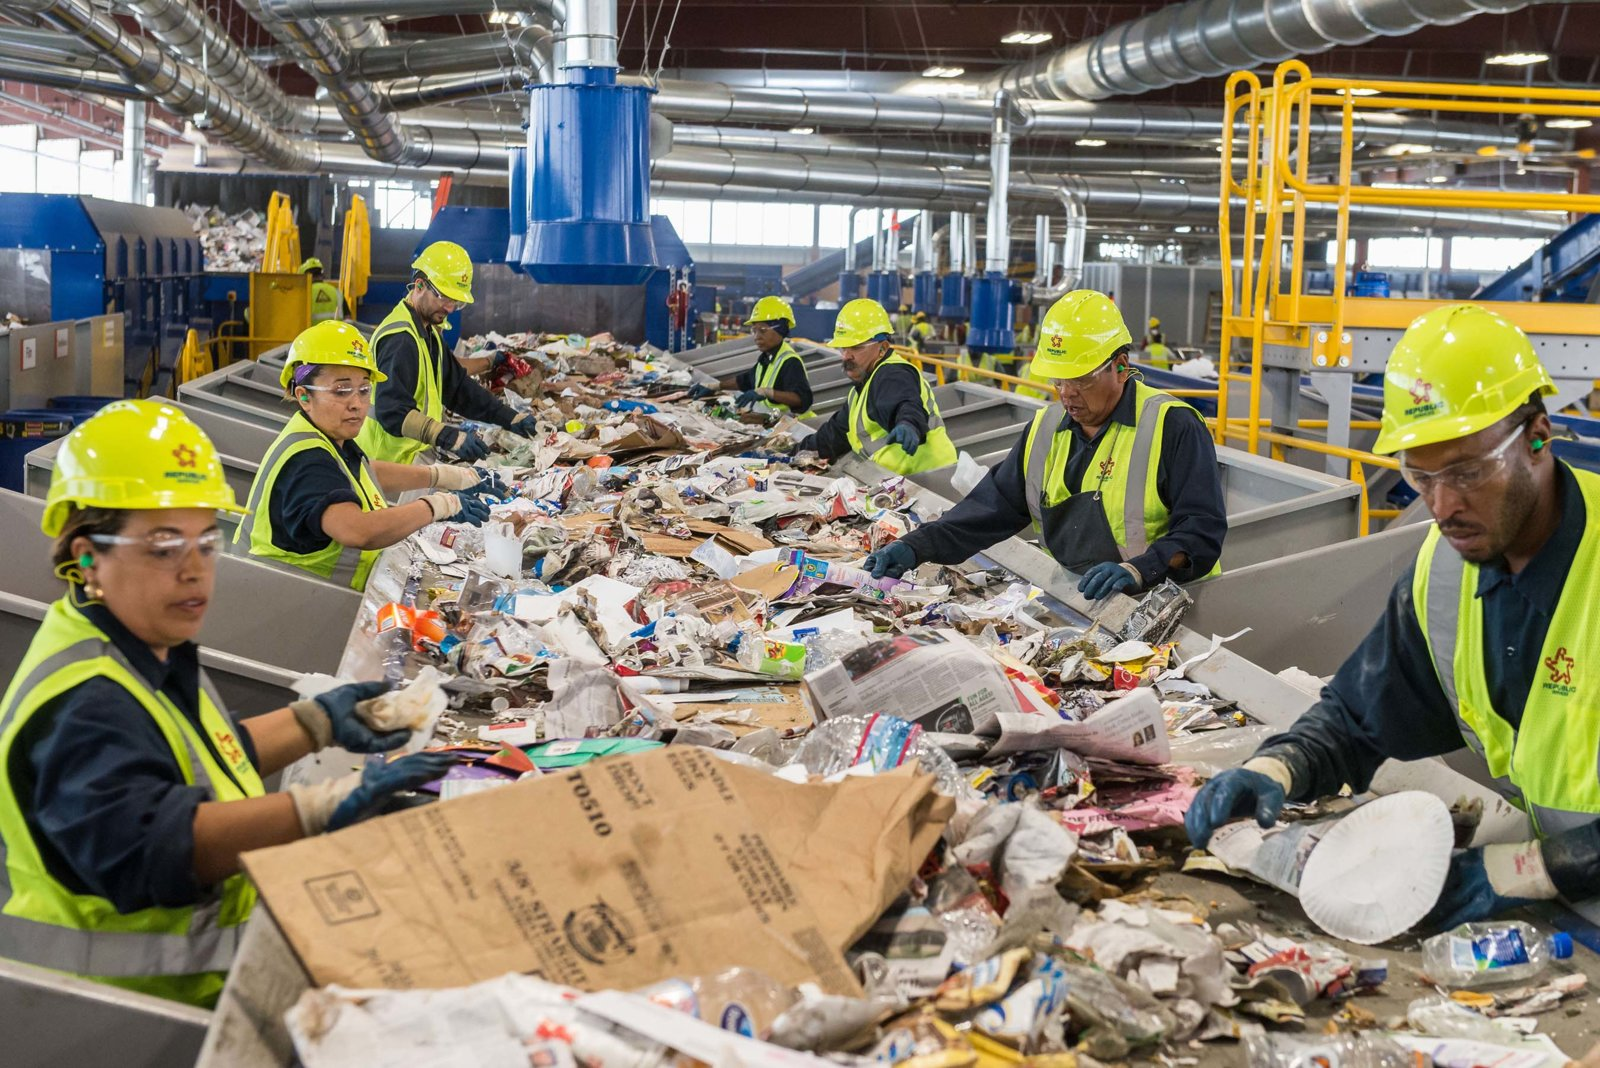 republic-services-recycling-center-9-HR.jpg